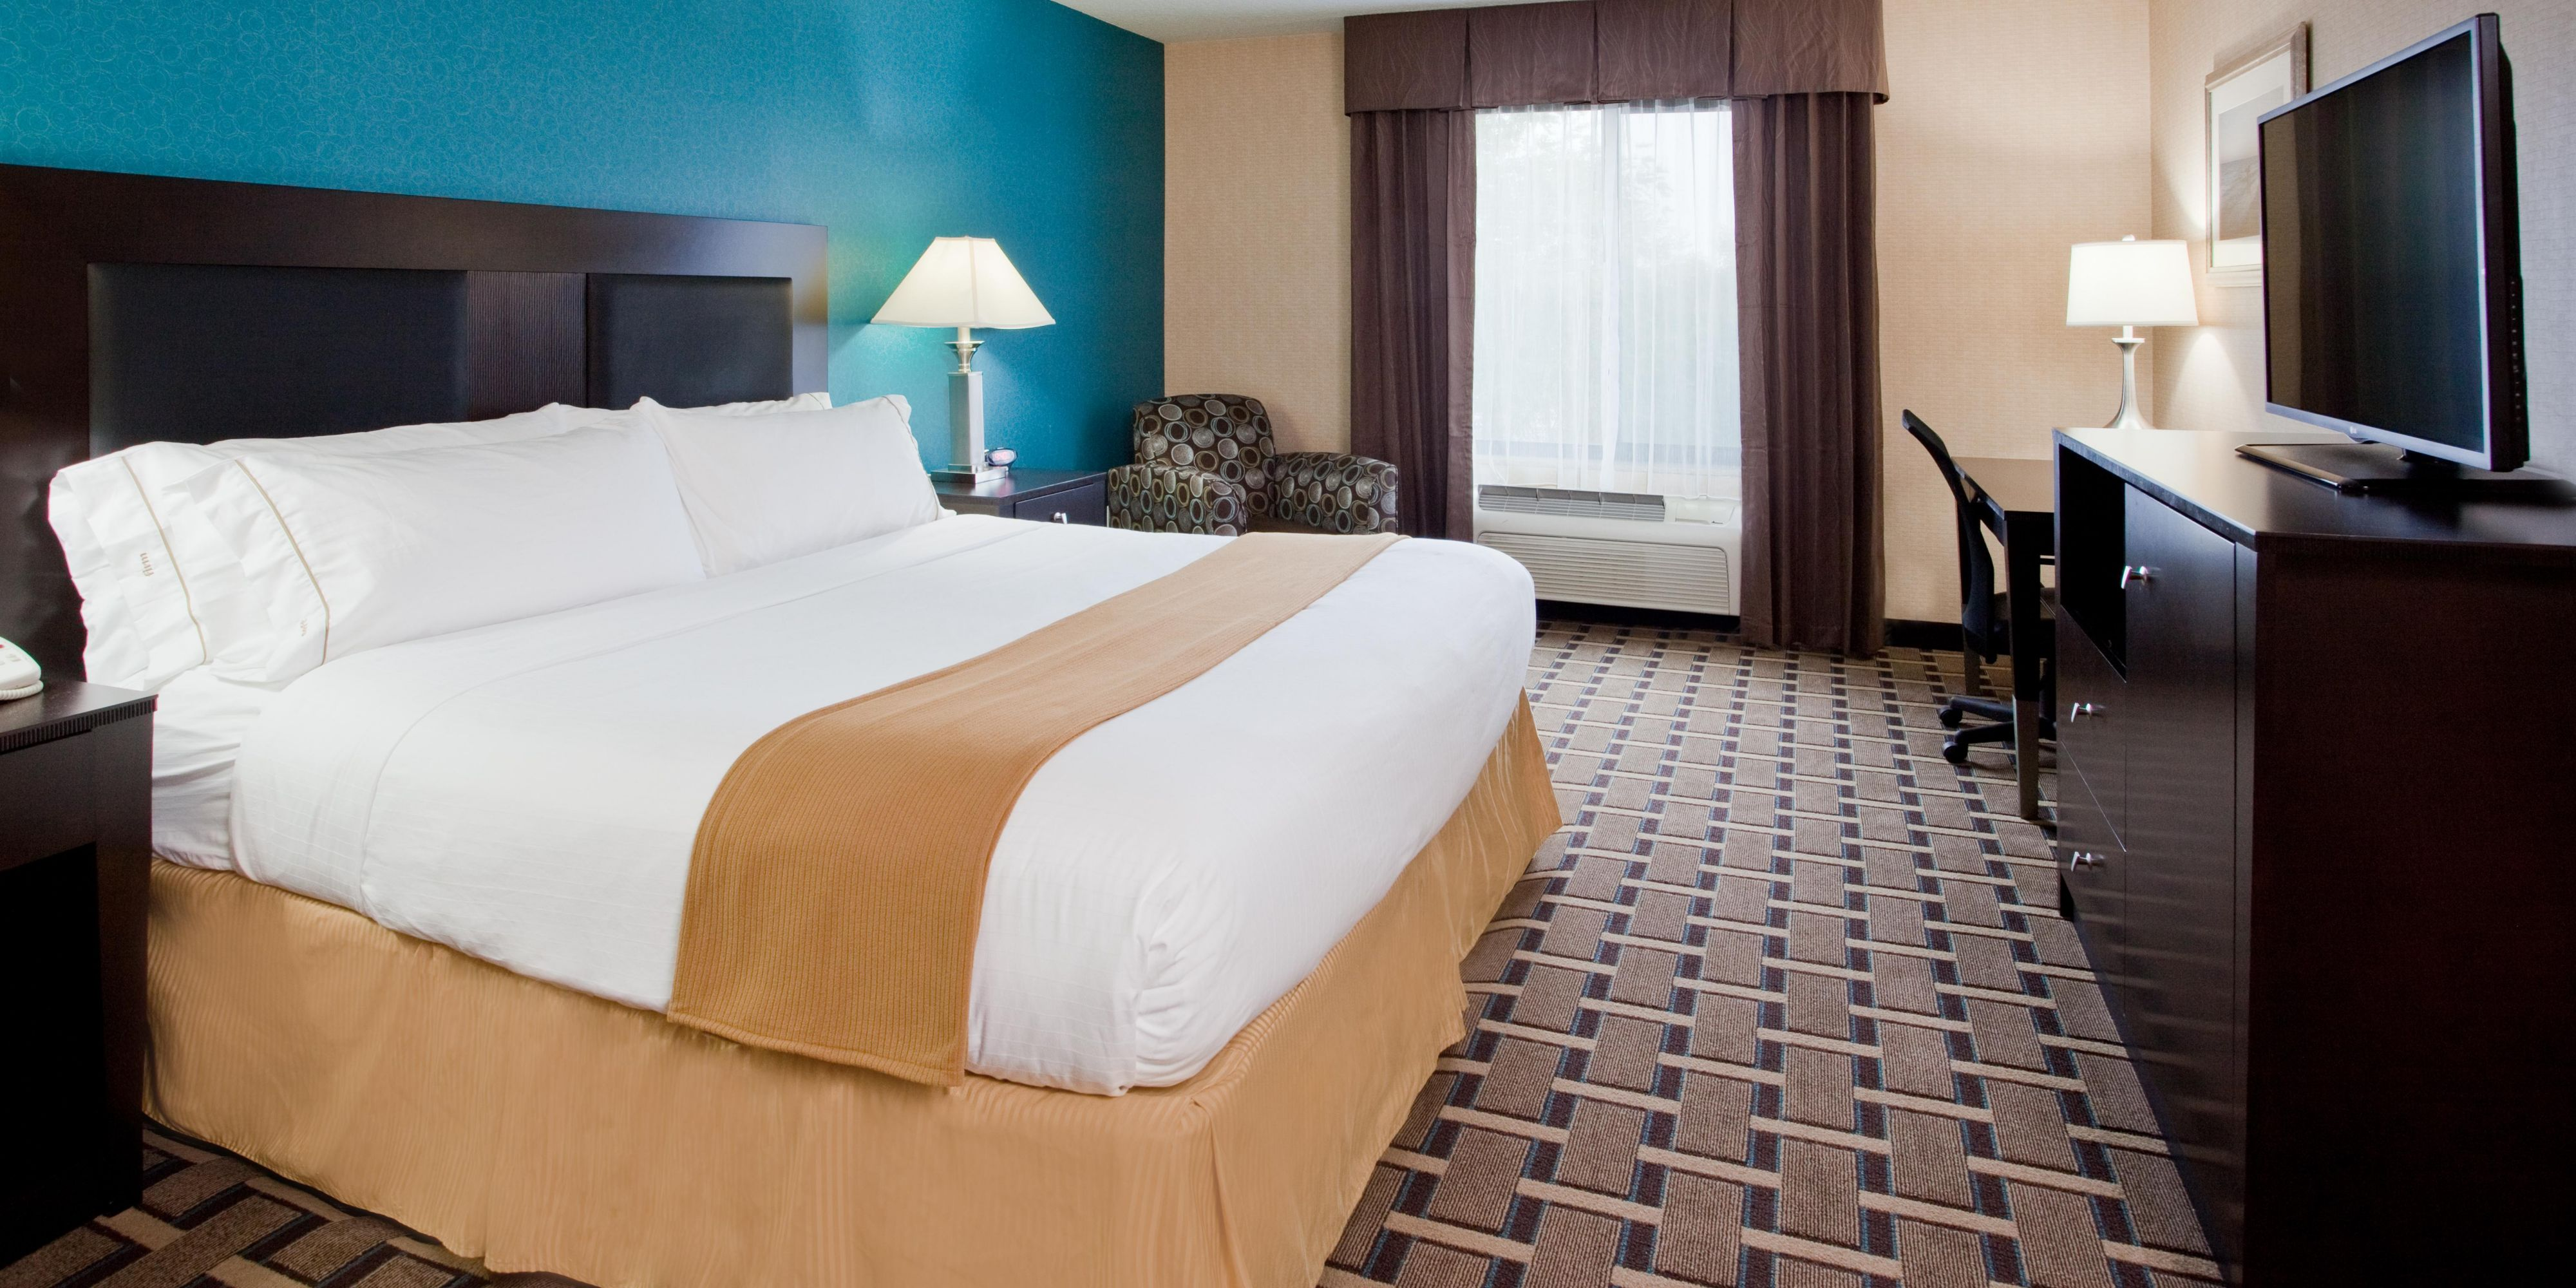 holiday-inn-express-and-suites-buford-2533129955-2x1